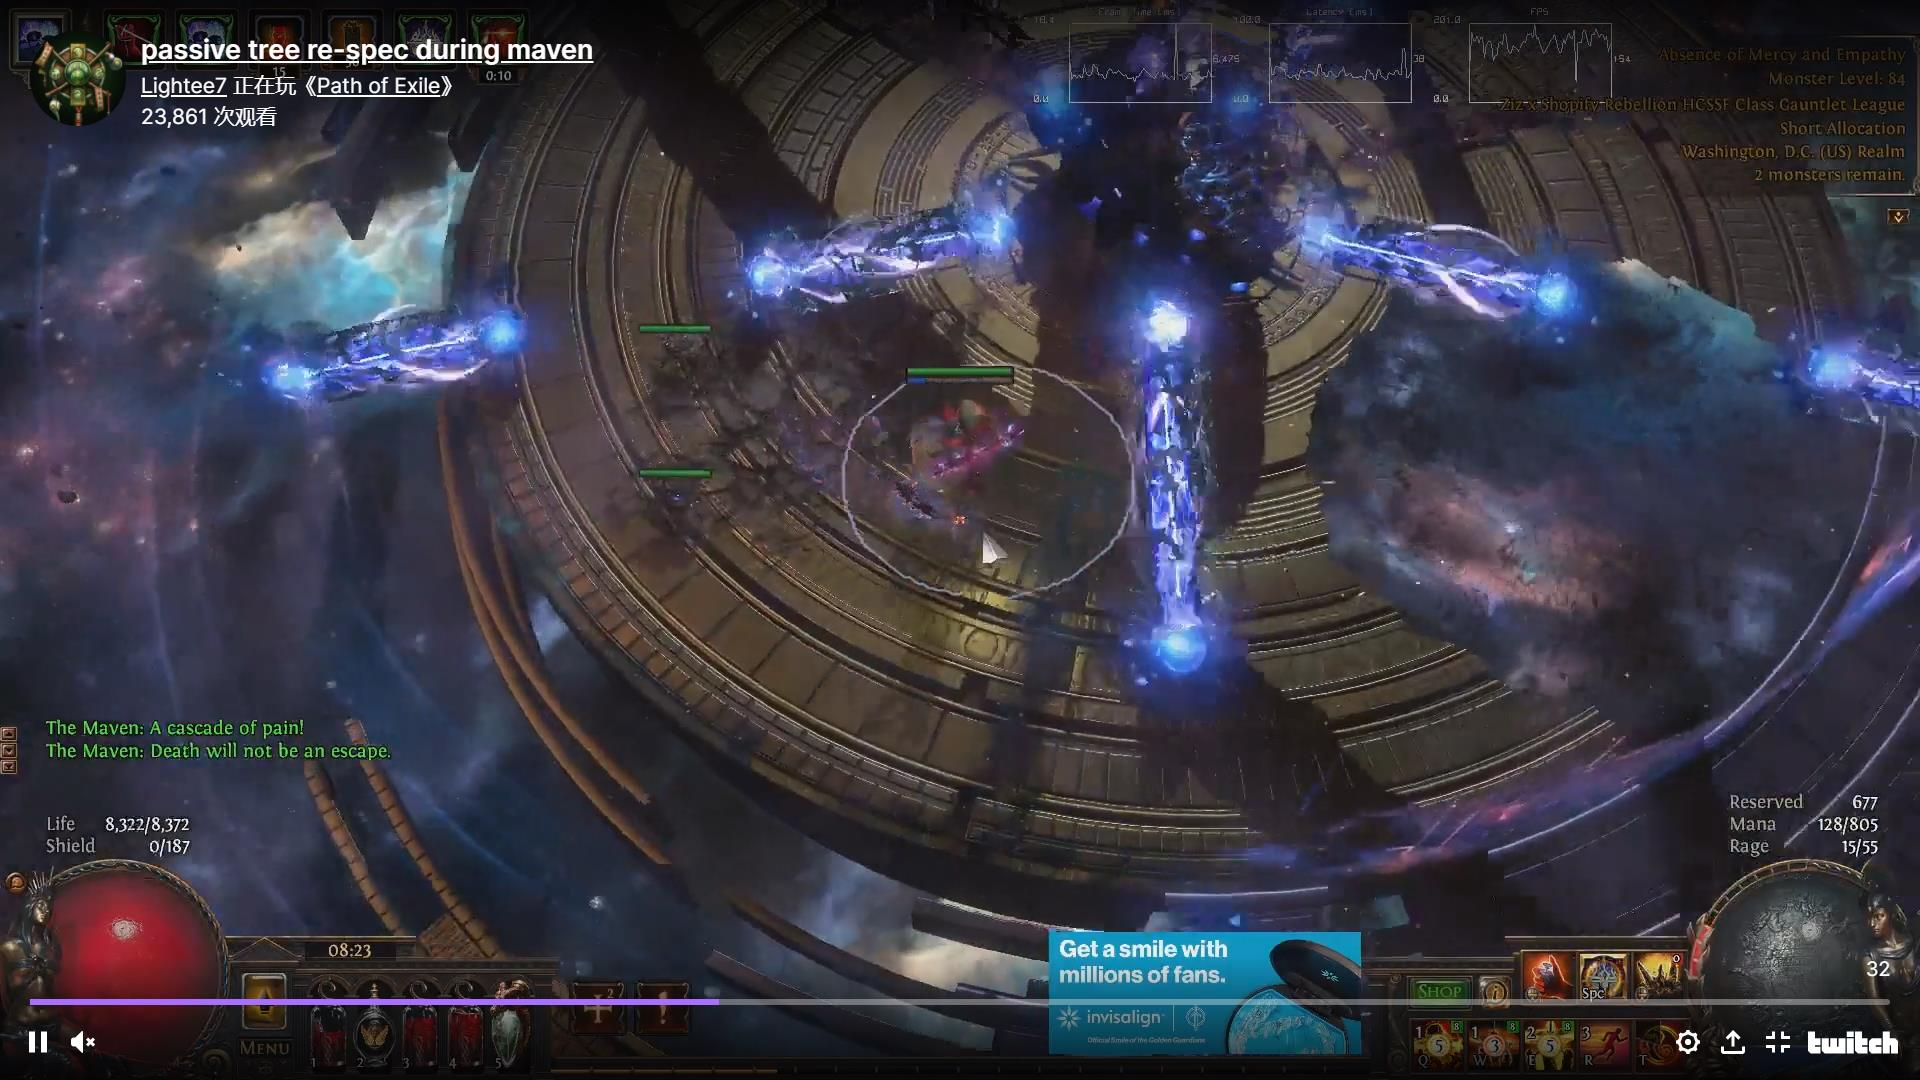 The next update on the Path to Exile is the echo of atlas